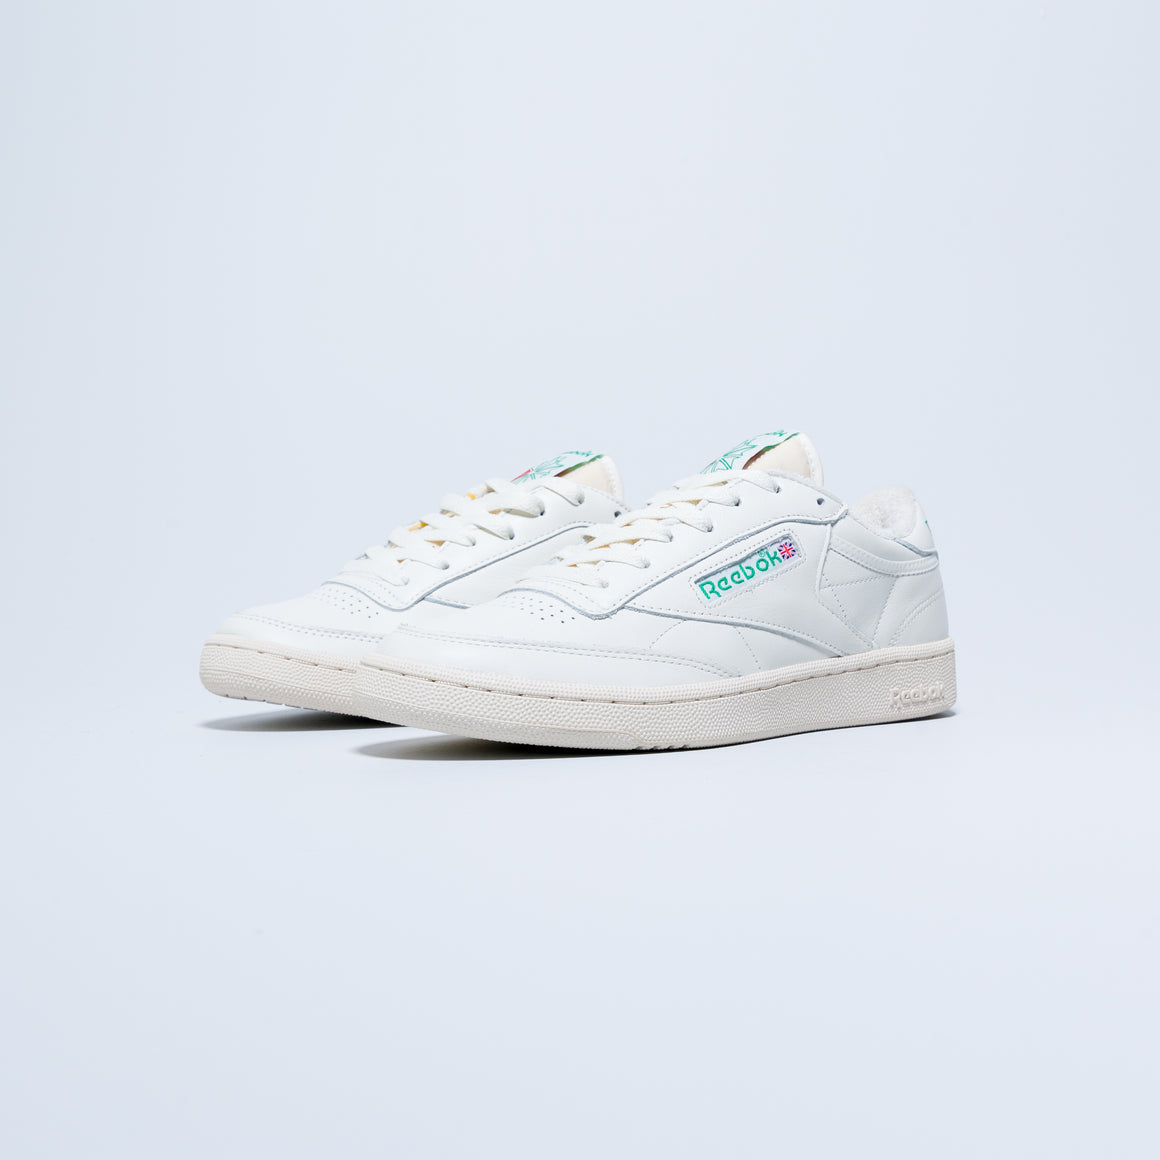 Reebok - Club C 1985 TV - Chalk/Paperwhite/Glen Green - Up There